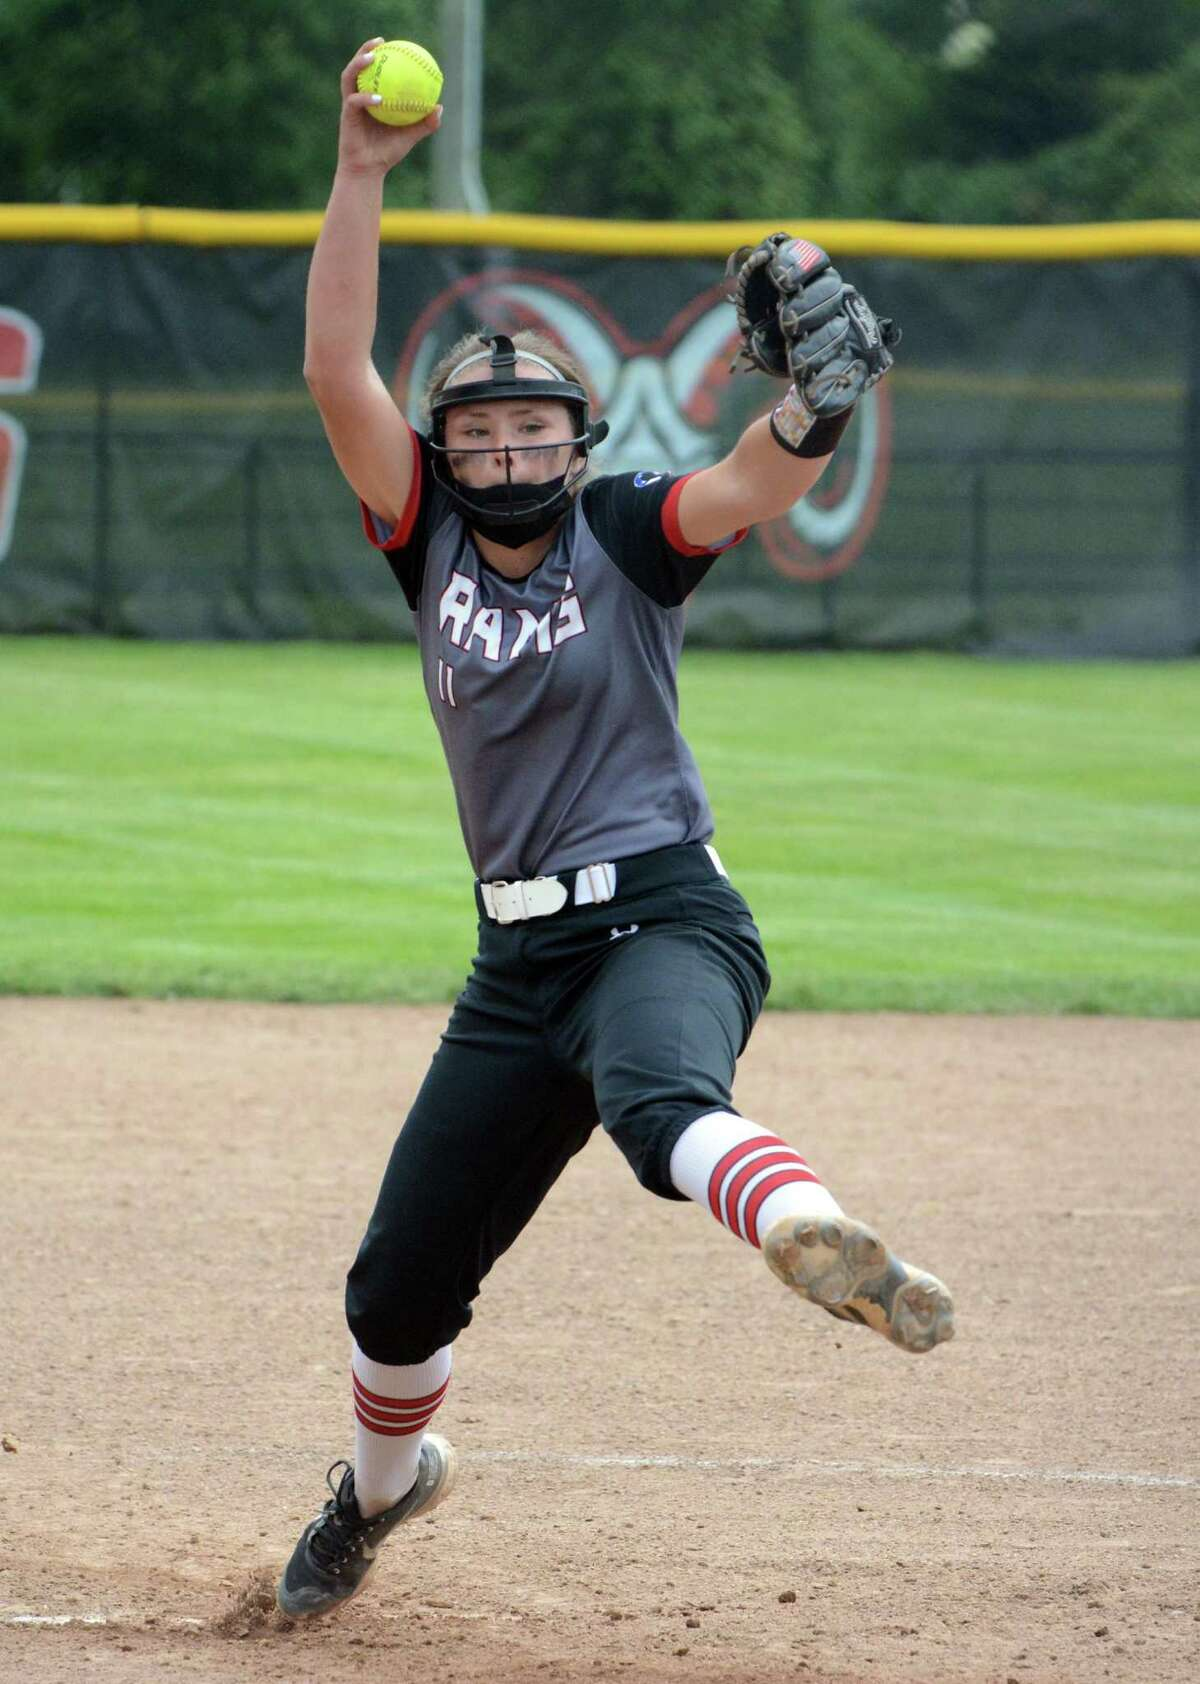 Cheshire's Bri Pearson pitches against Trumbull during a second-round Class LL softball game on Wednesday in Cheshire.